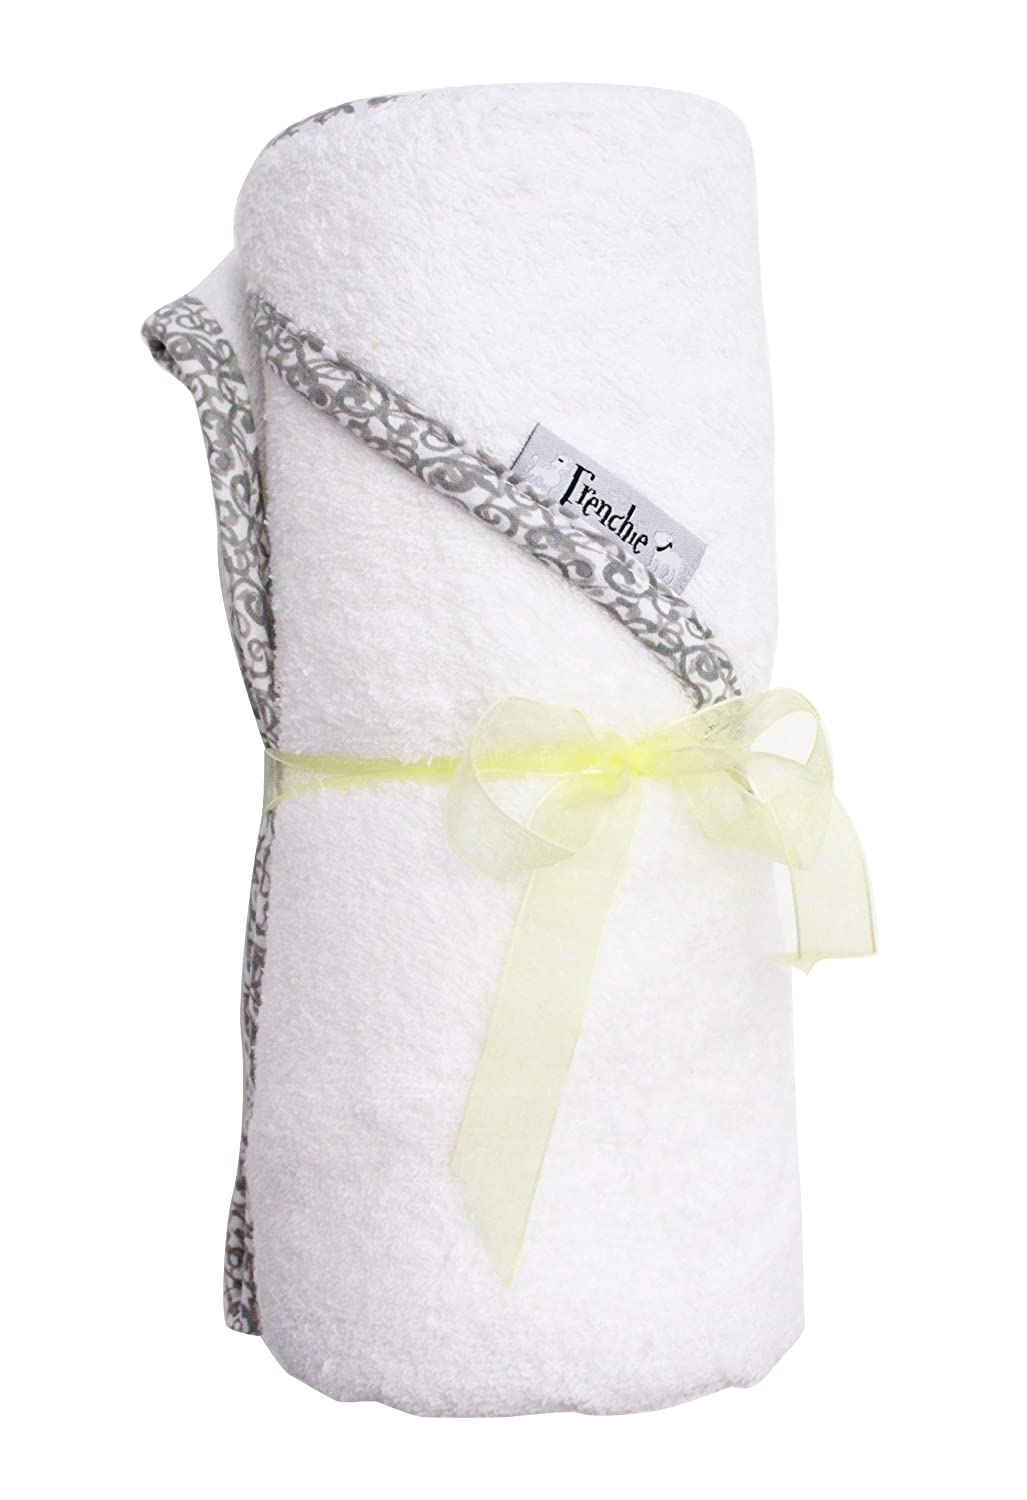 by Frenchie Mini Couture Absorbent Hooded Towel White with Swirl Print Extra Large